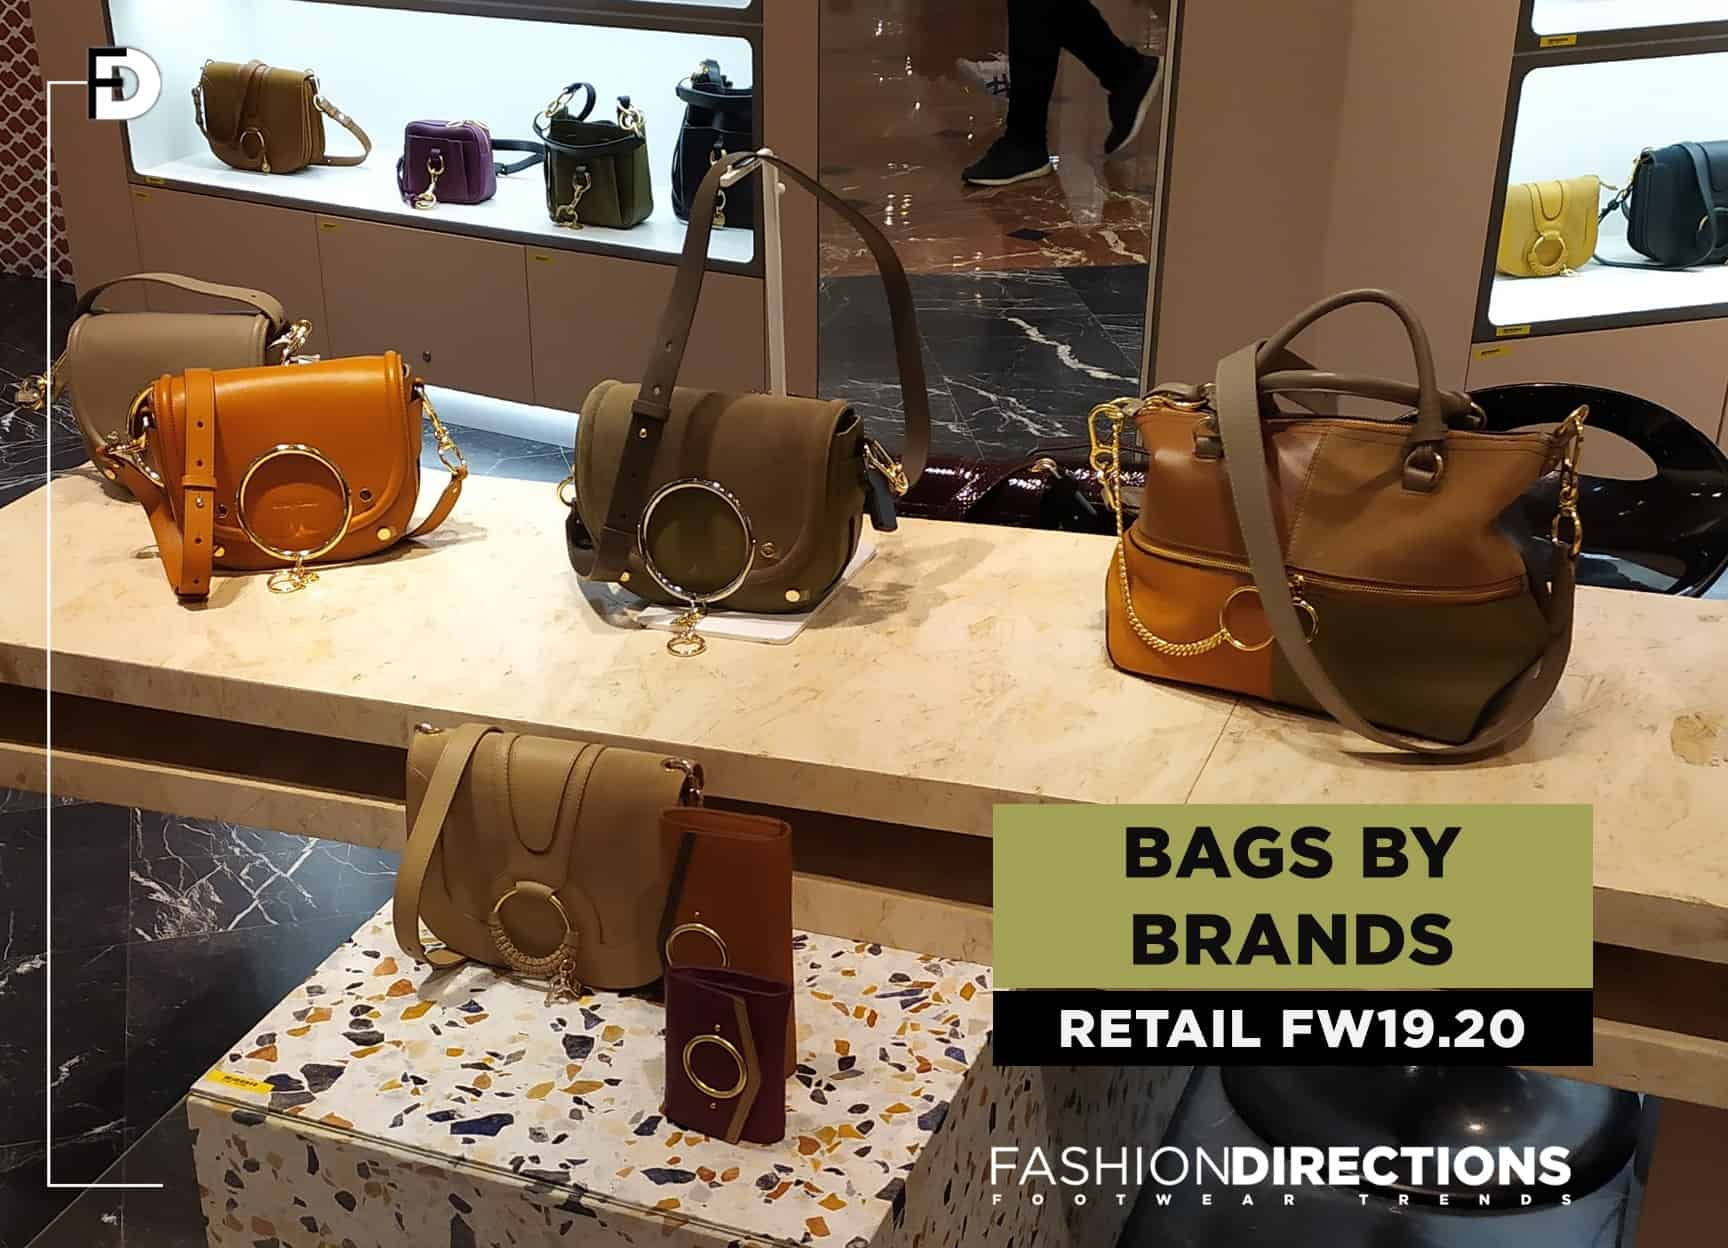 Retail Bags FW19.20 By Brands